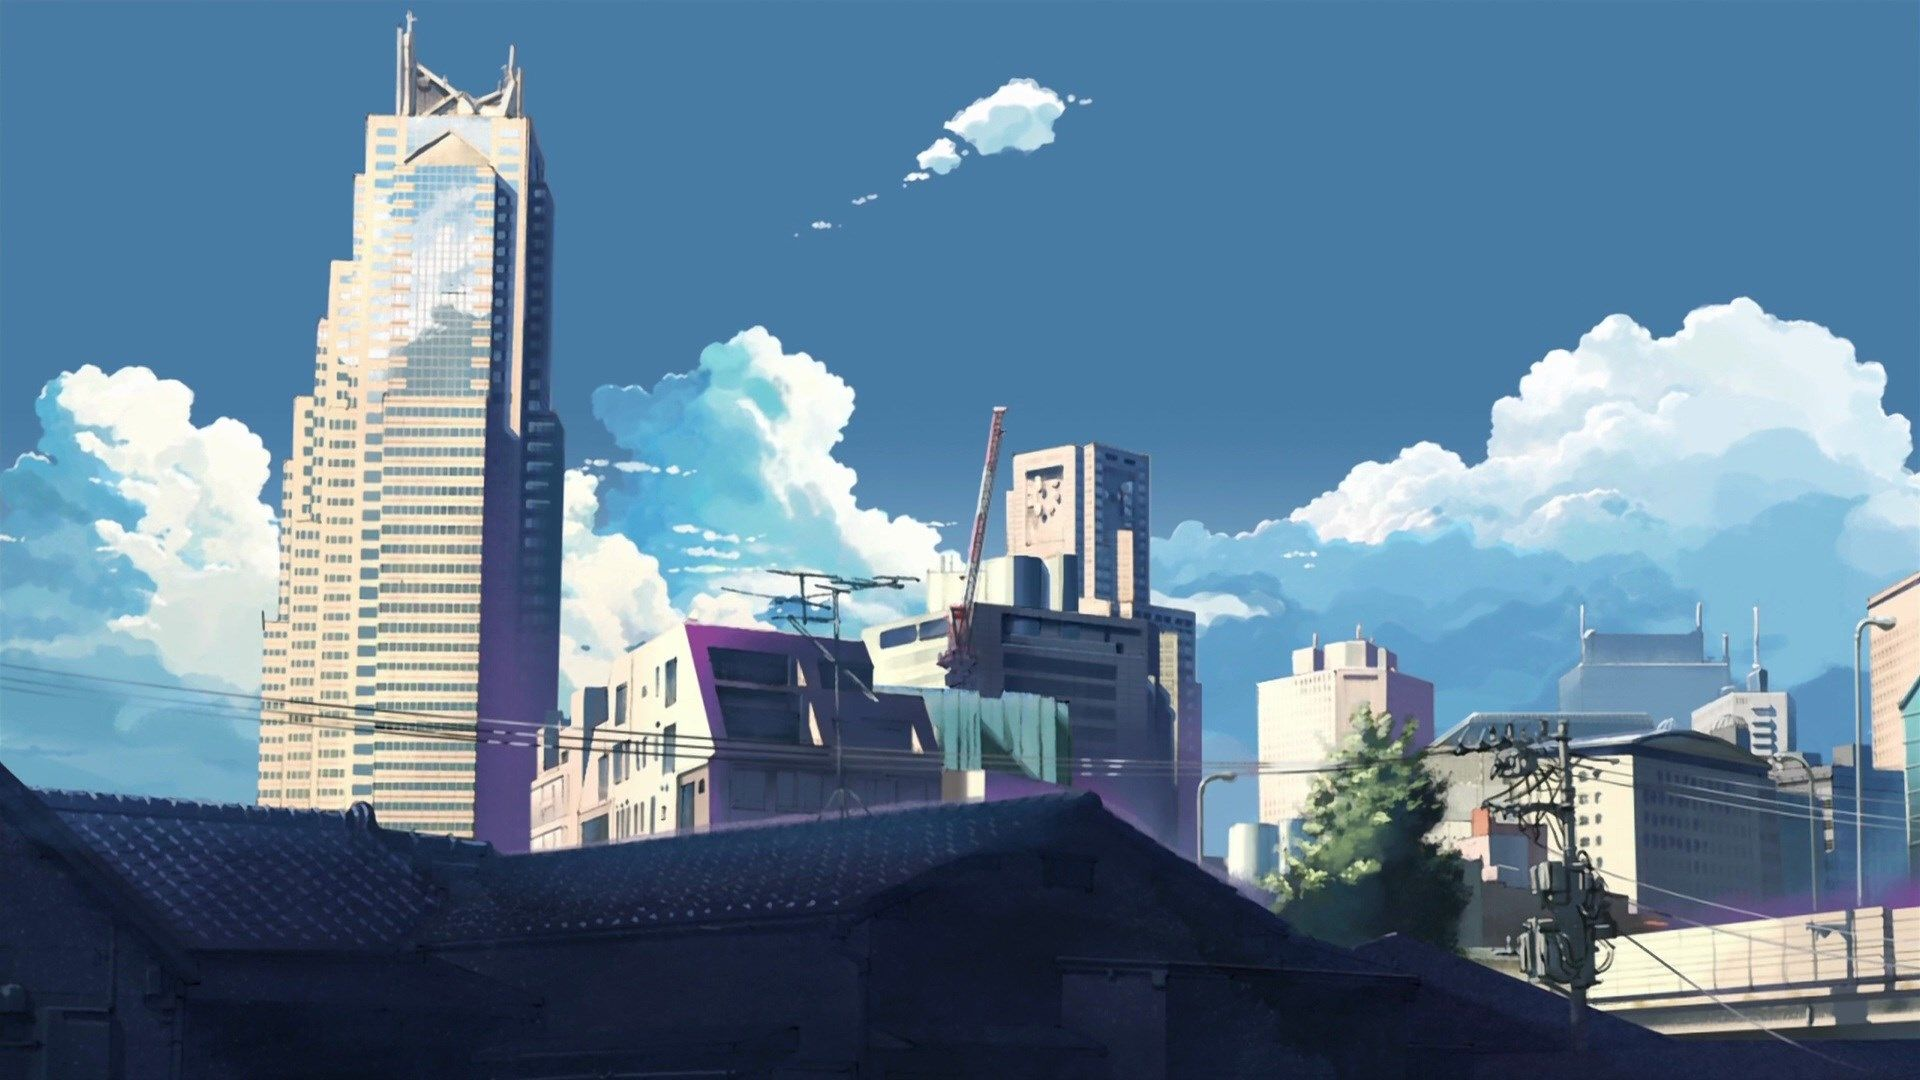 1920x1080 Px 5 Centimeters Per Second Wallpaper